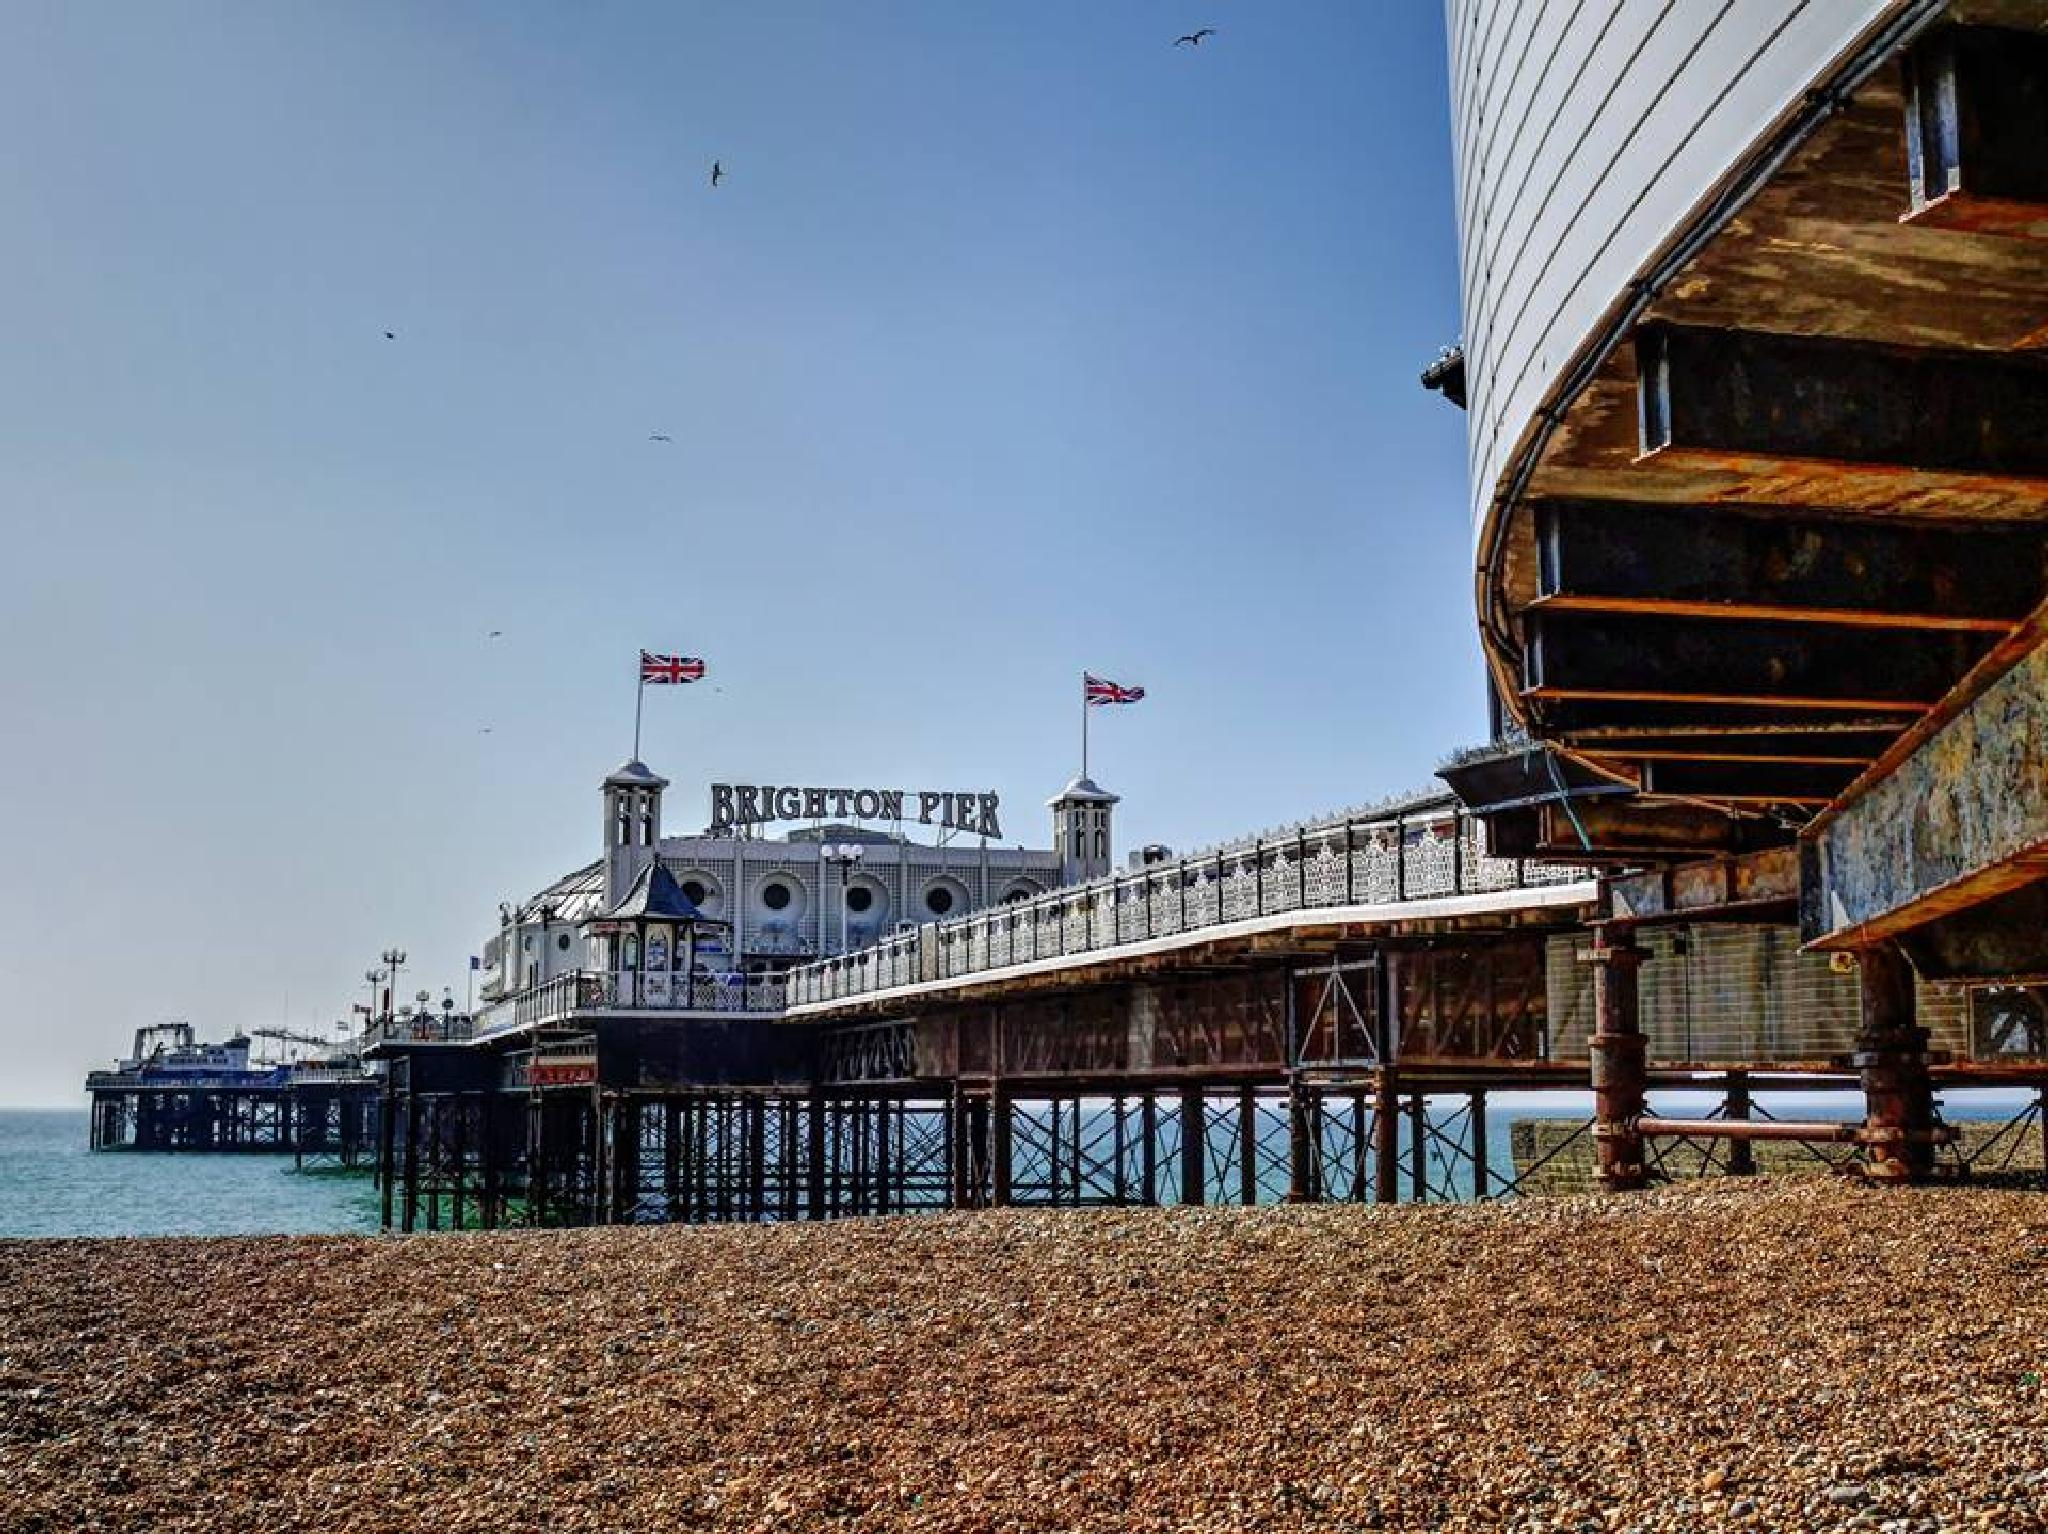 The Peir in the City of Brighton England by Steven Best